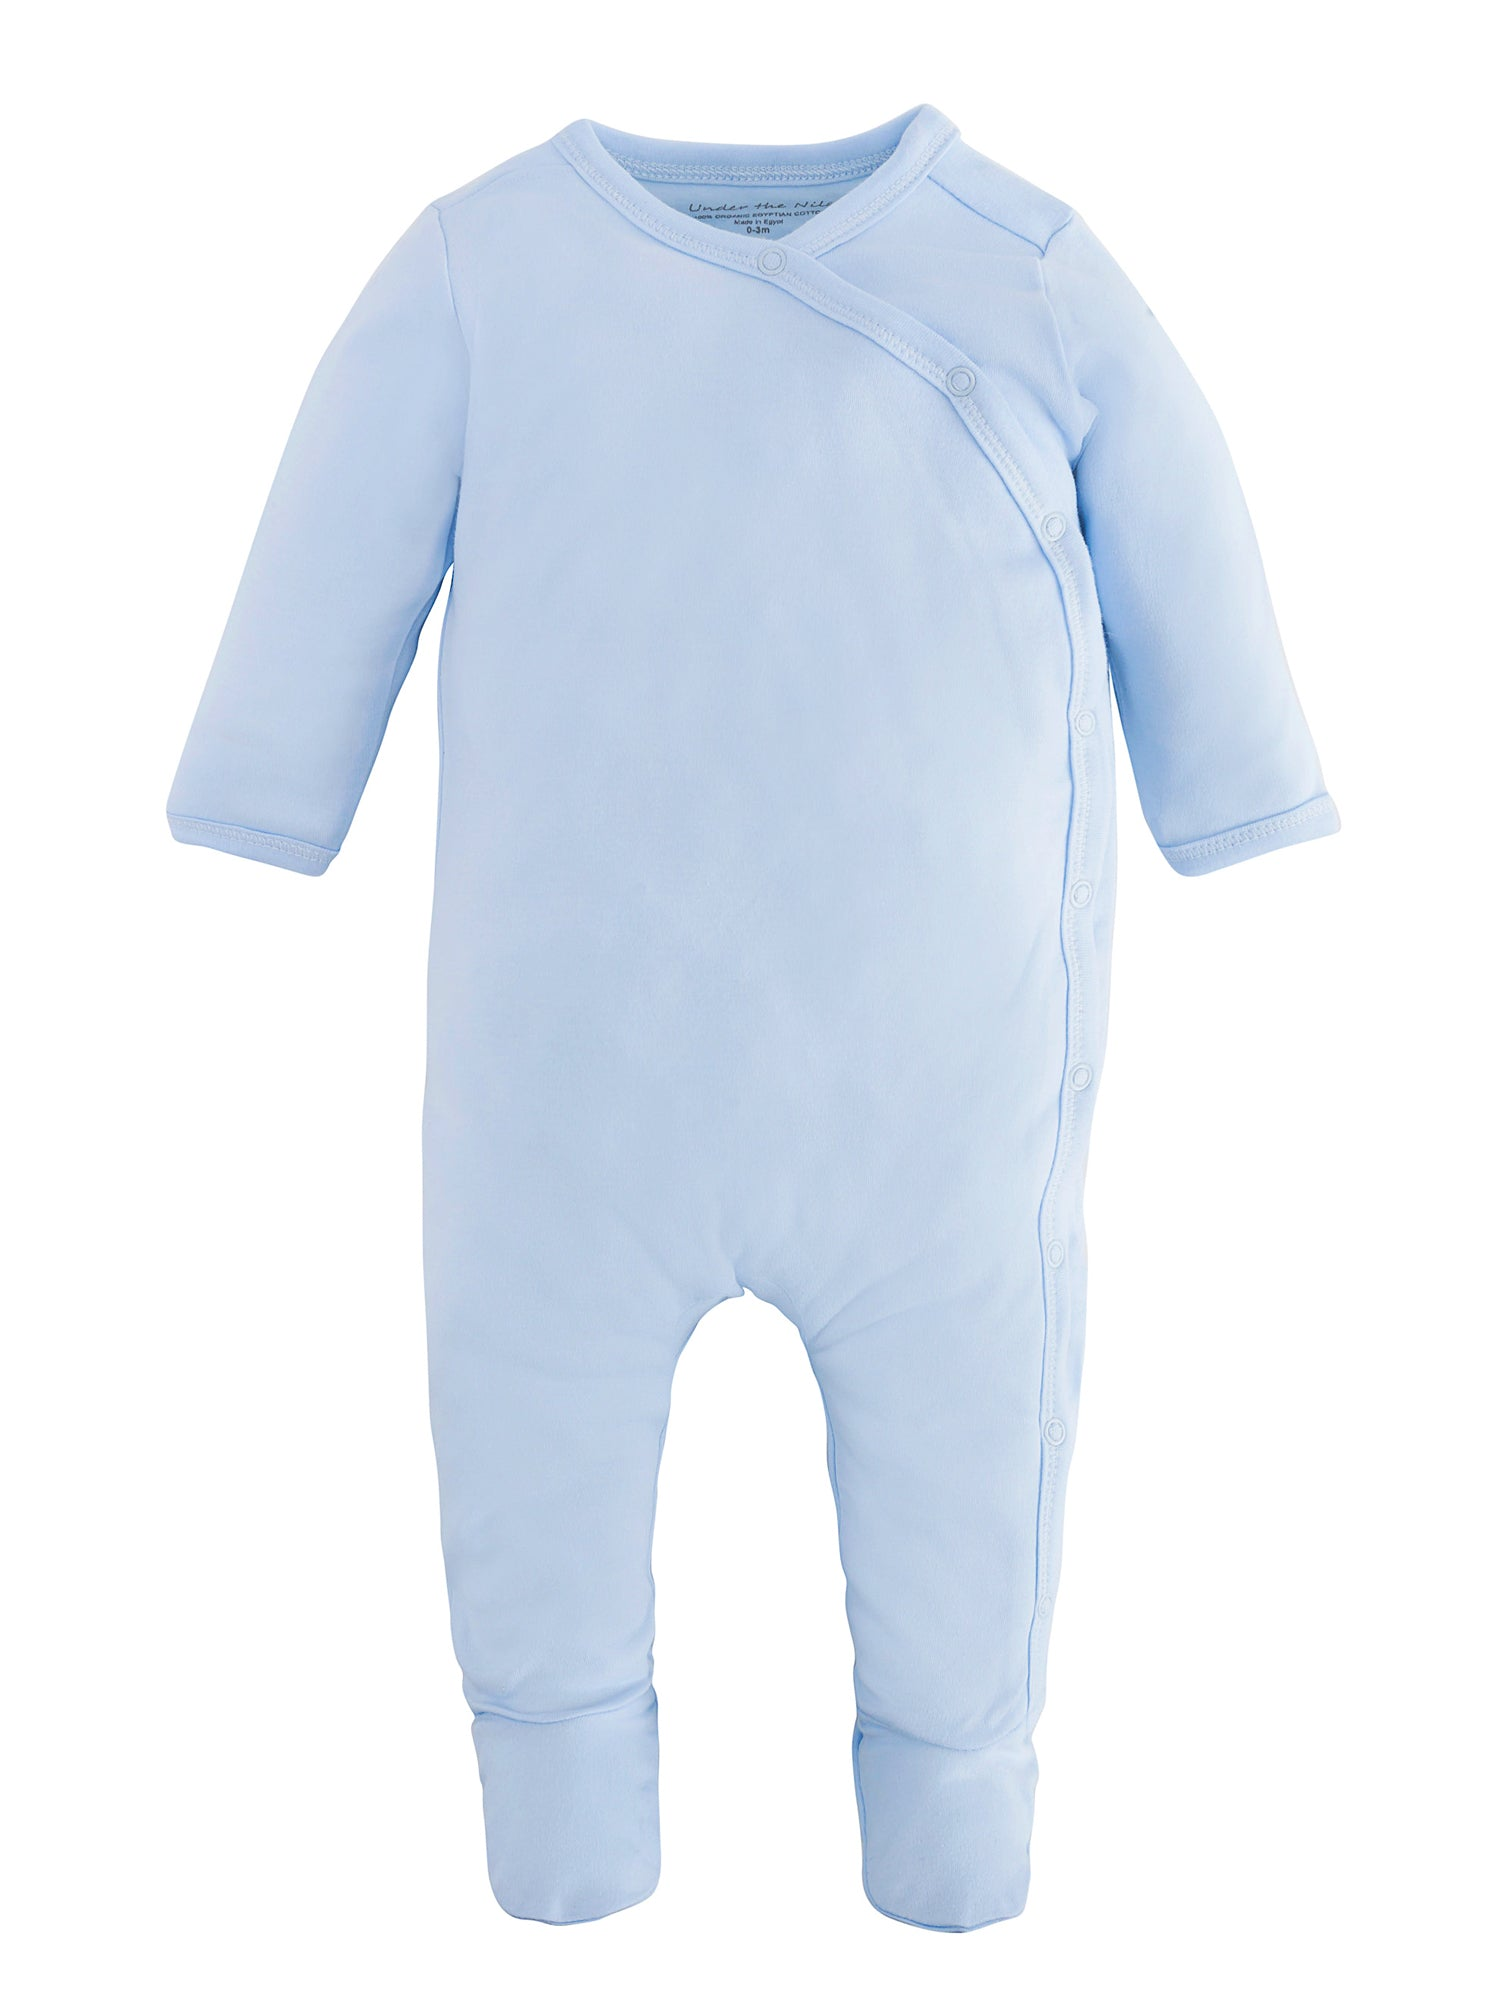 280bd8ee0 Organic Cotton Blue Side-Snap Footie Pajamas for Baby – Under the Nile